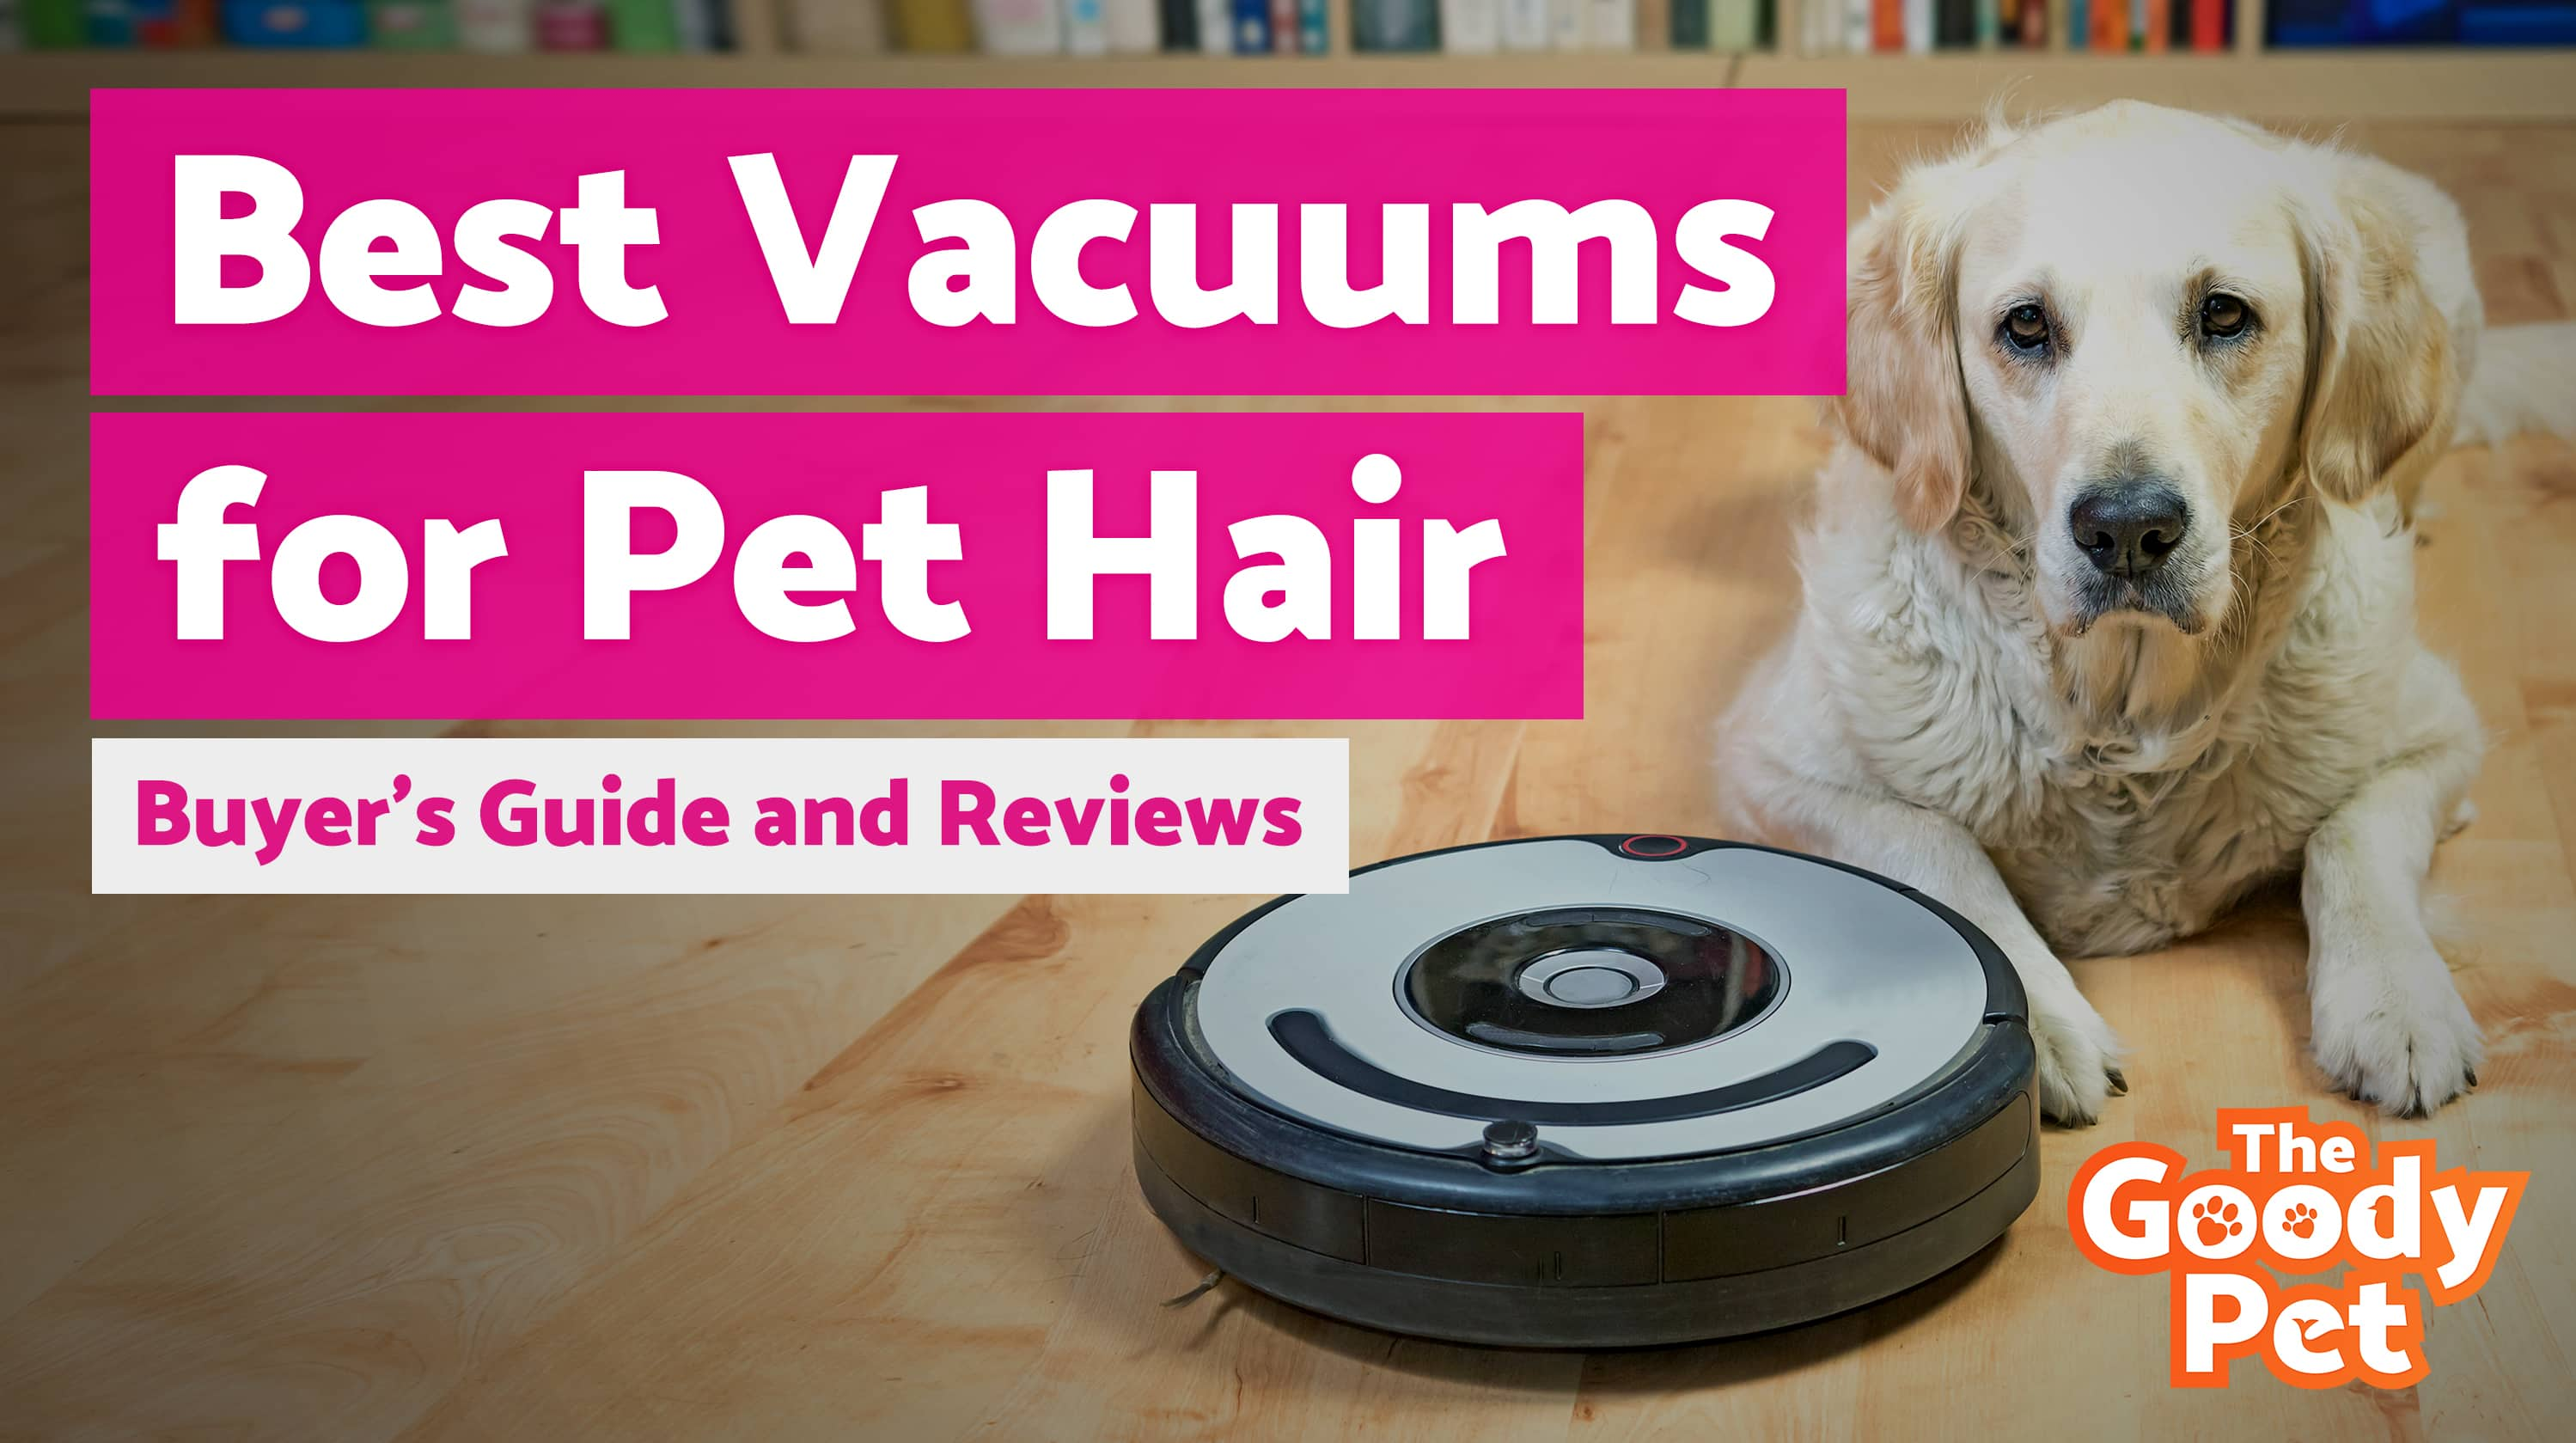 Best Vacuum Cleaners For Pet Hair 2020 Best Pet Hair Vacuum Cleaner (July 2019) | TheGoodyPet